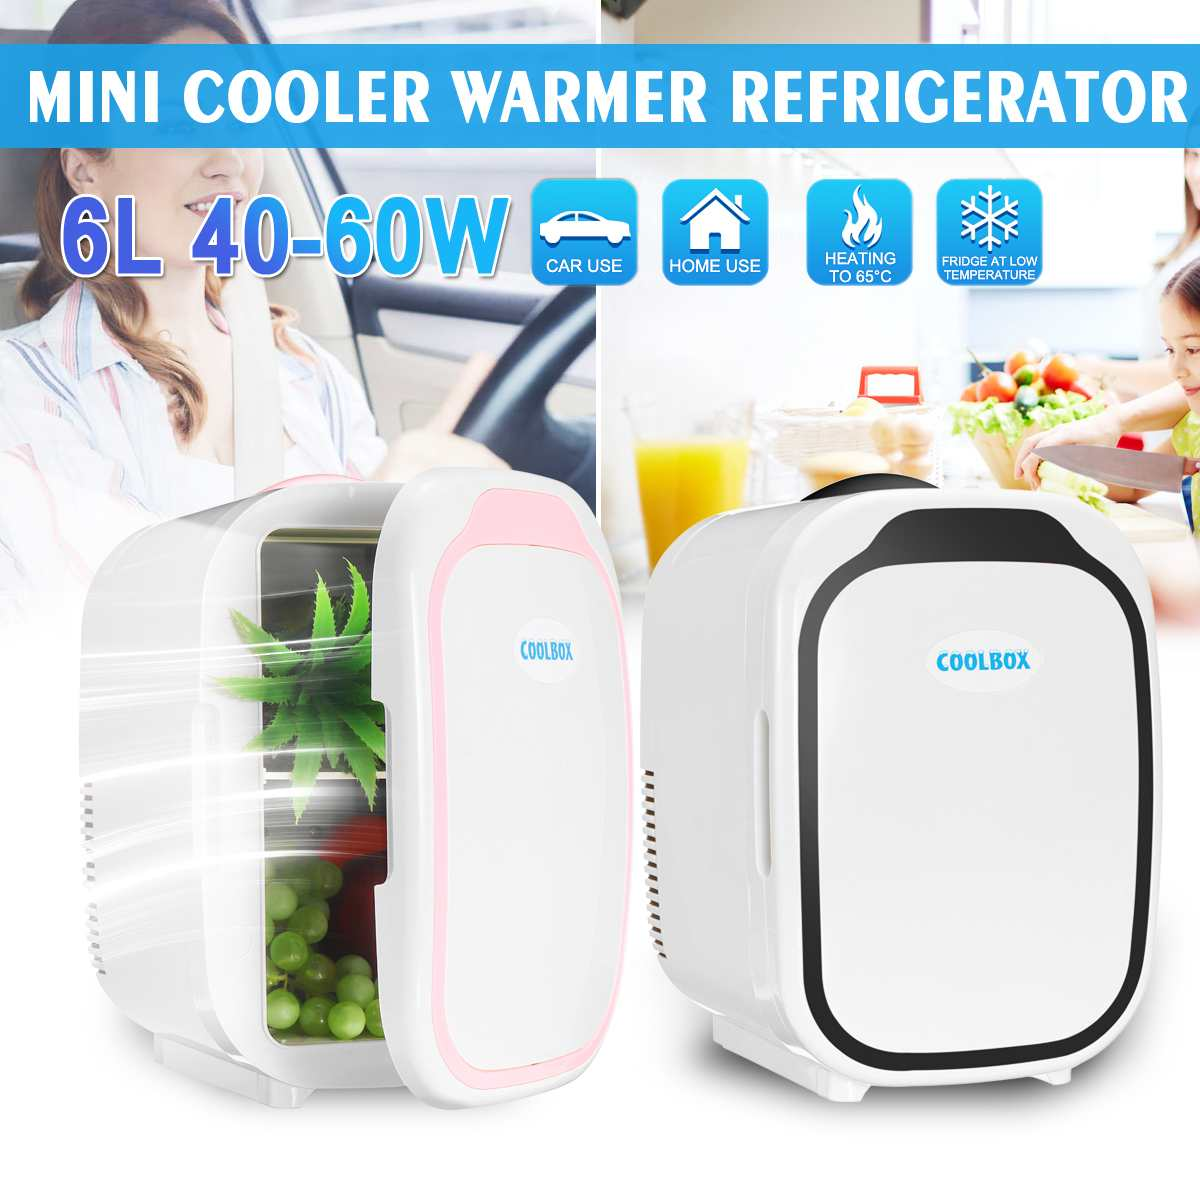 6L Fridge Quiet Refrigerators Low Noise Refrigerators Freezer Cooling Fridge